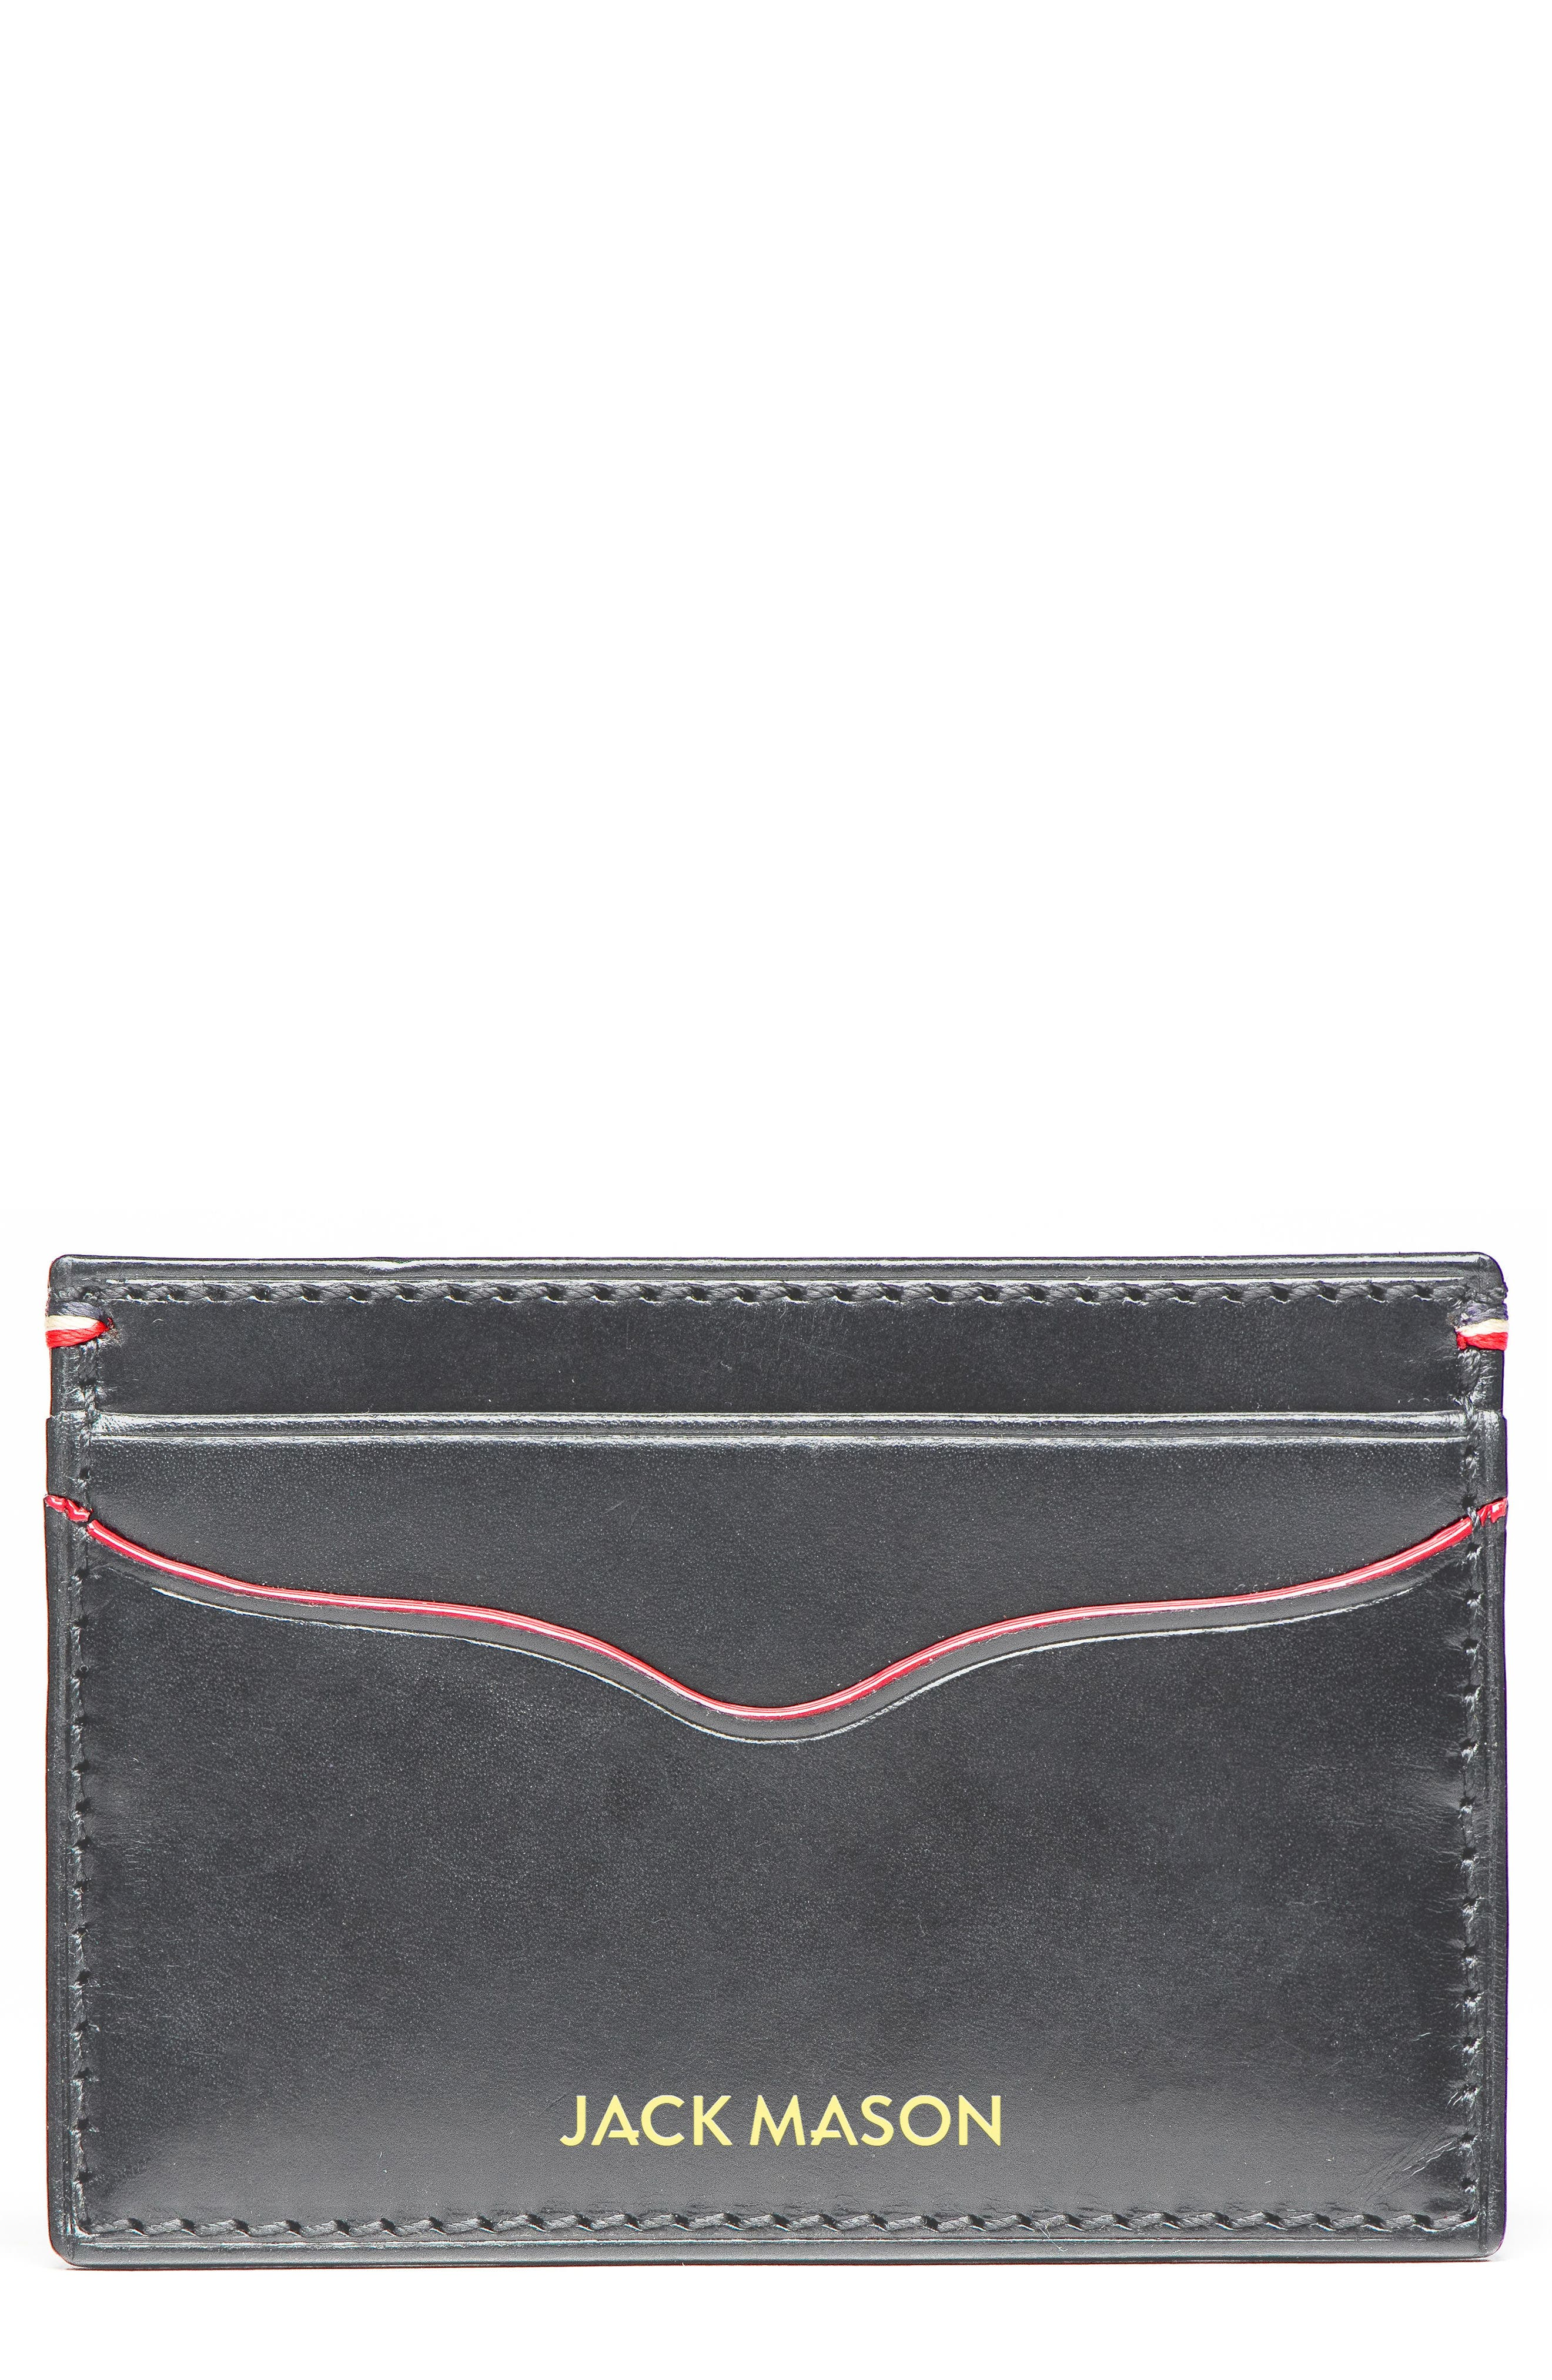 Jack Mason Lux Leather Card Case